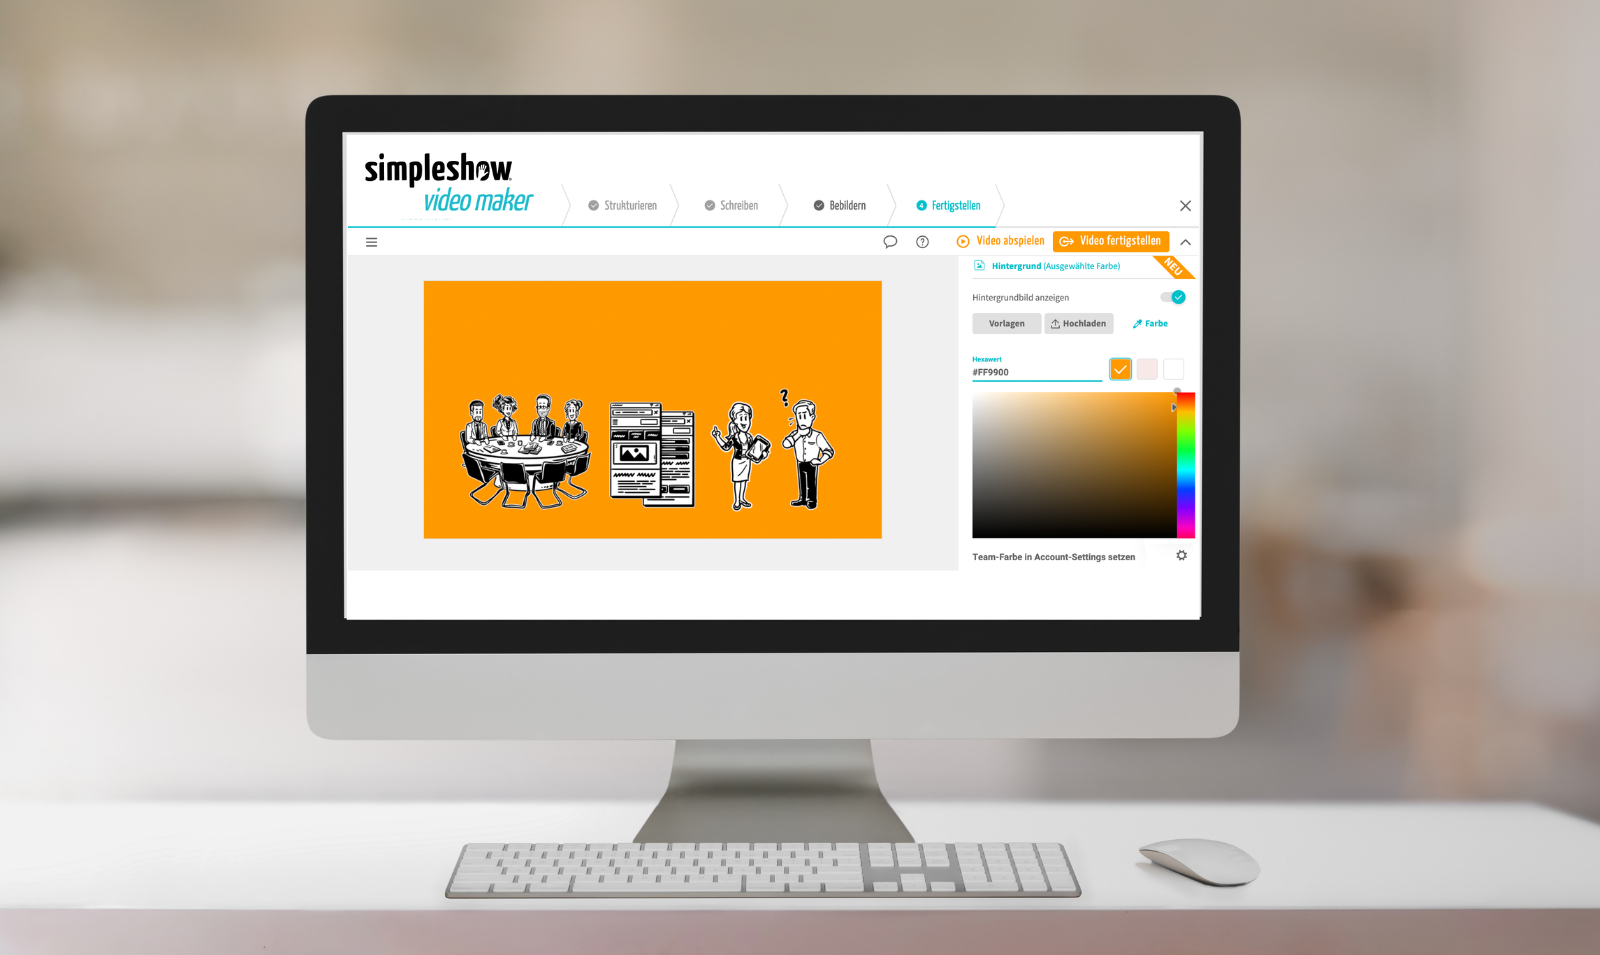 simpleshow video maker entwickelt neue CI Features